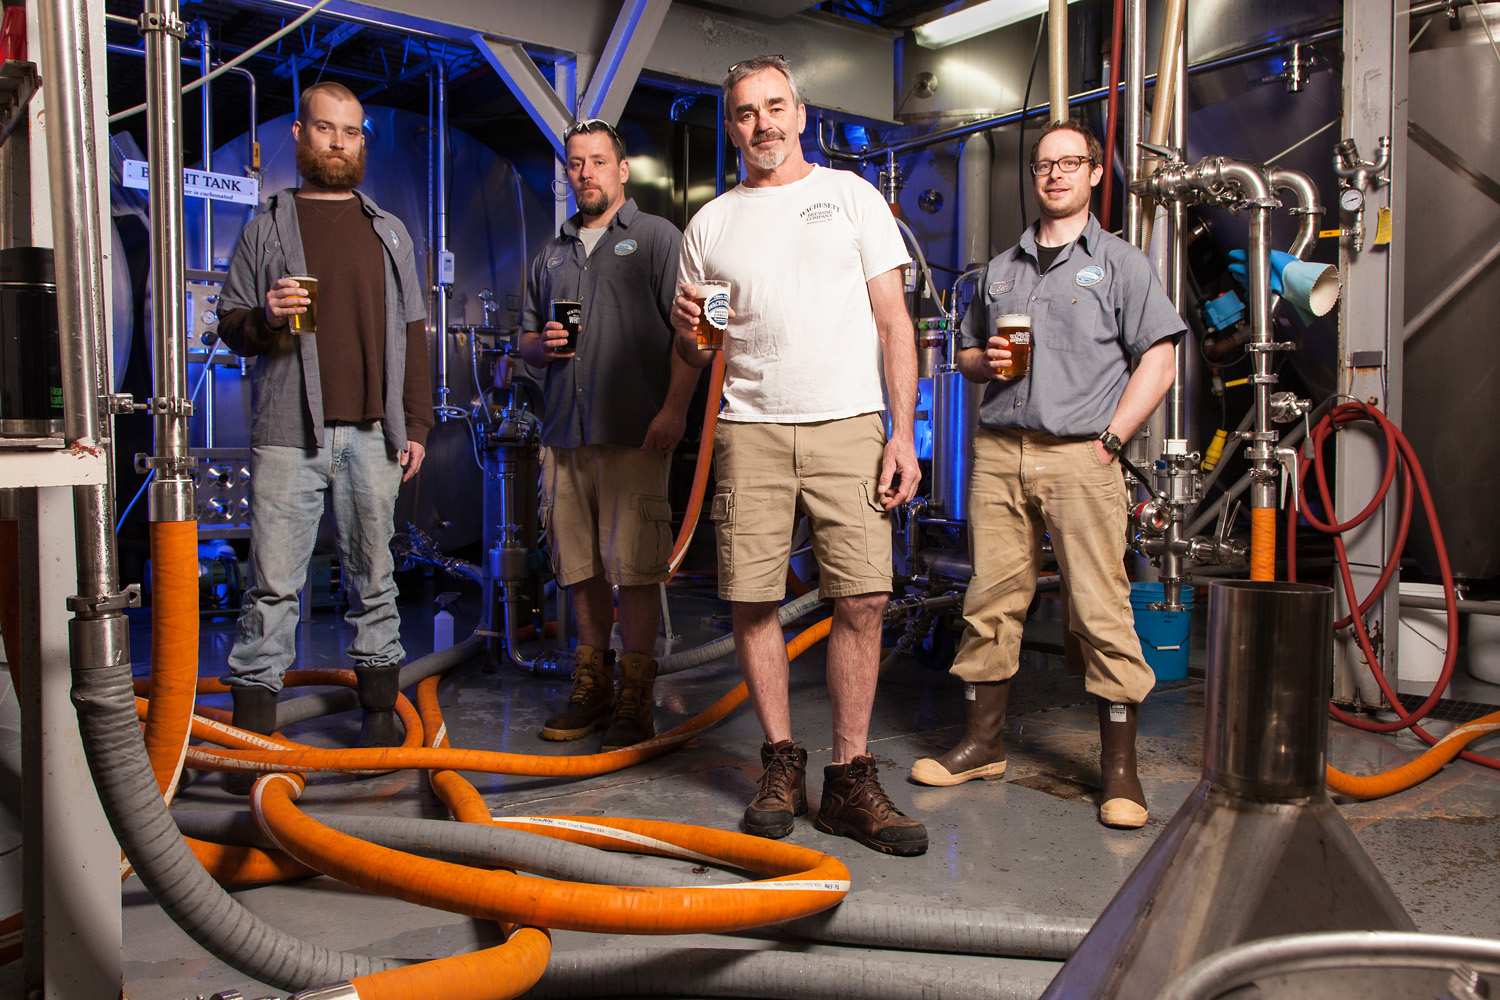 Pete Mattison, Steve Dennette, Brewmaster Howie Howard and Seth Wright The Brew Crew at Wachusett Brewing Co. Westminster, MA Established in 1993